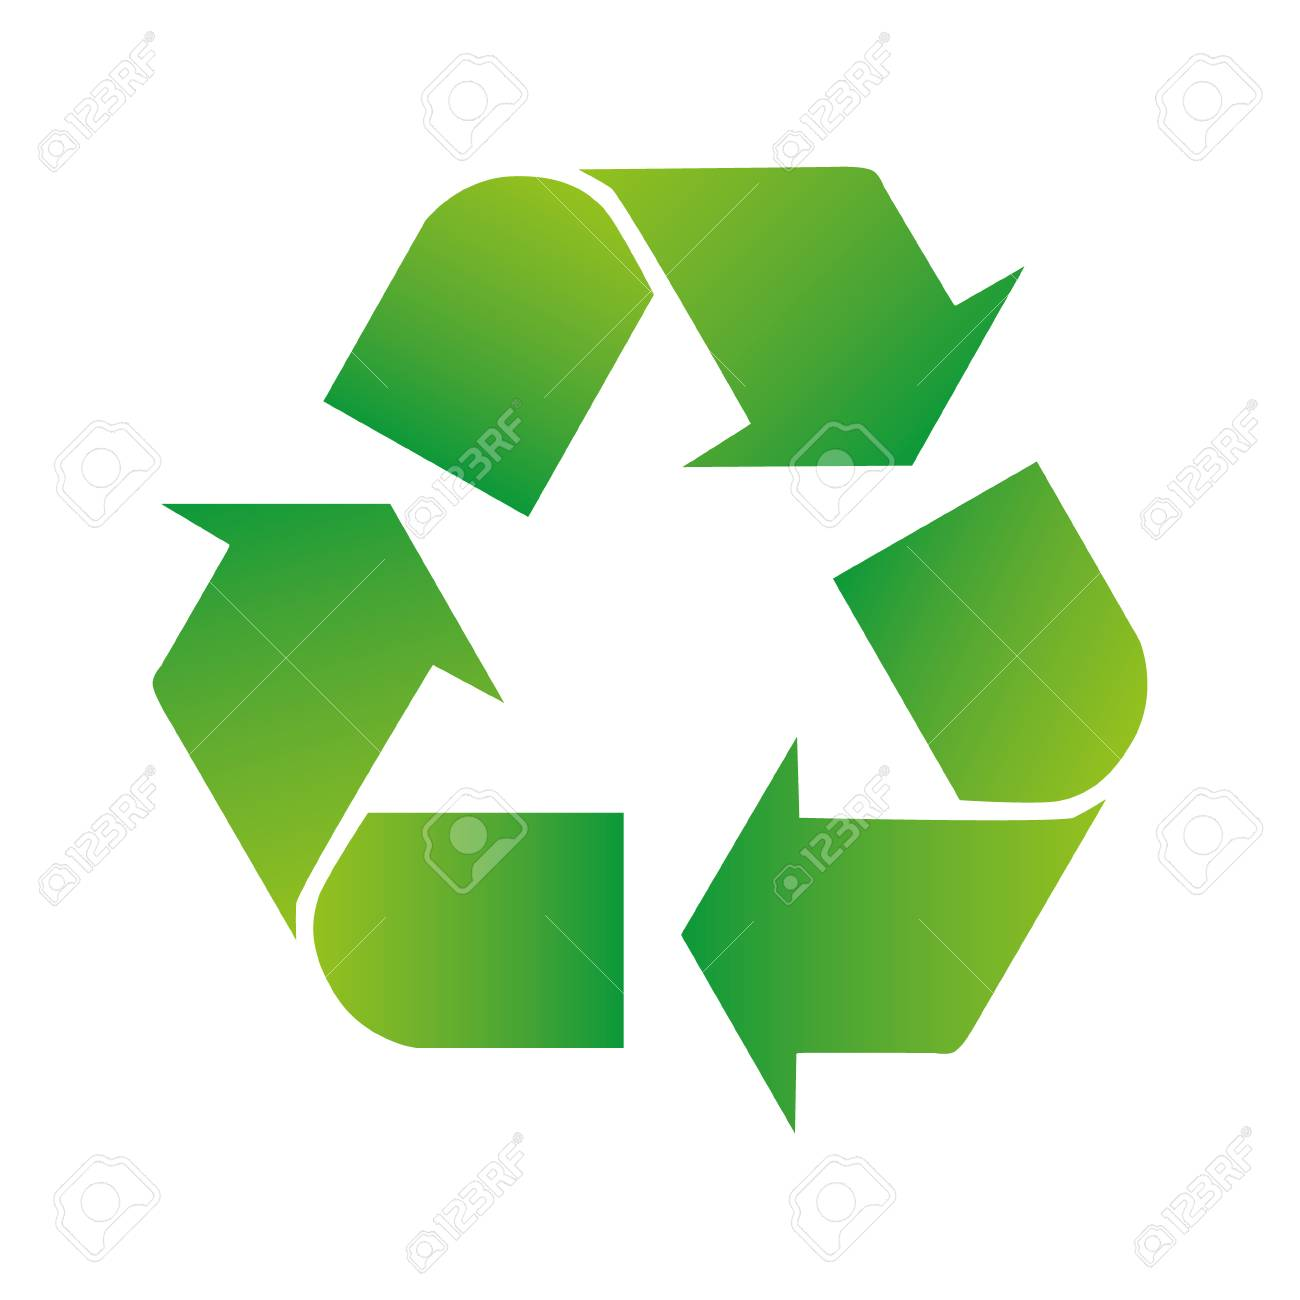 Green arrows recycle eco symbol vector illustration isolated on white background. Recycled sign. Cycle recycled icon. Recycled materials symbol. - 125836121